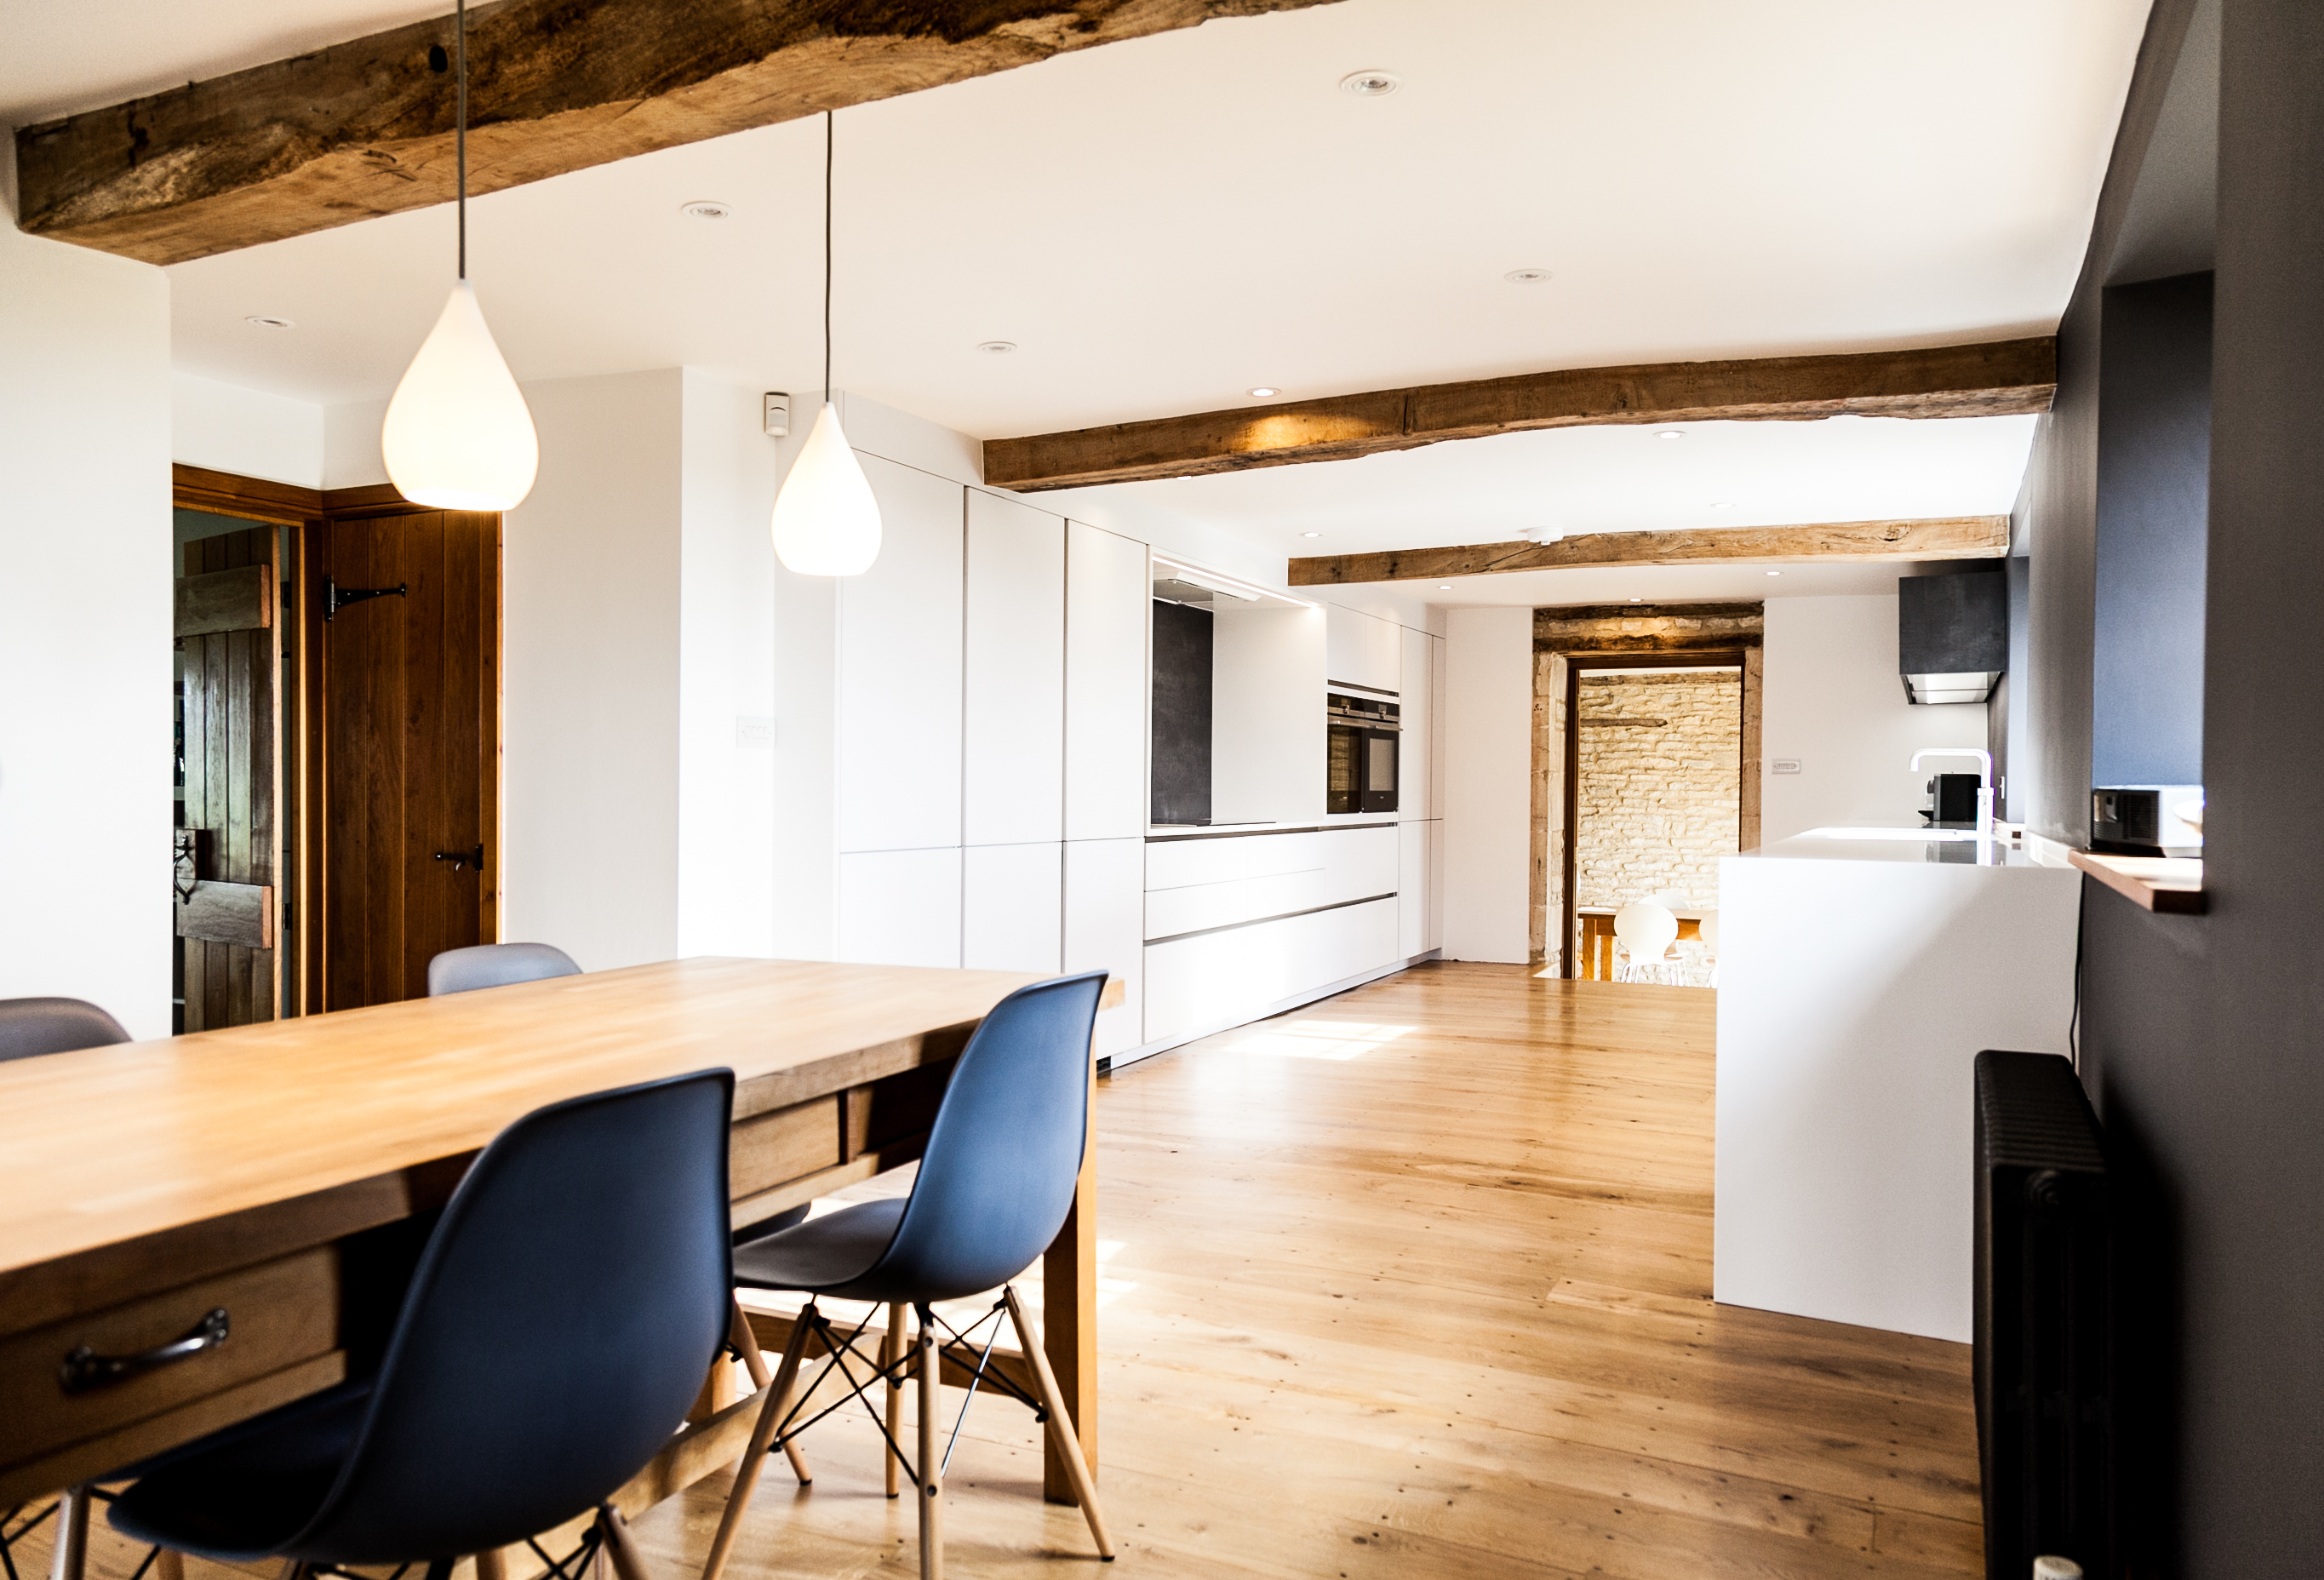 Suffolks Kitchen Project - Kitchens Cirencester, Voga Kitchens